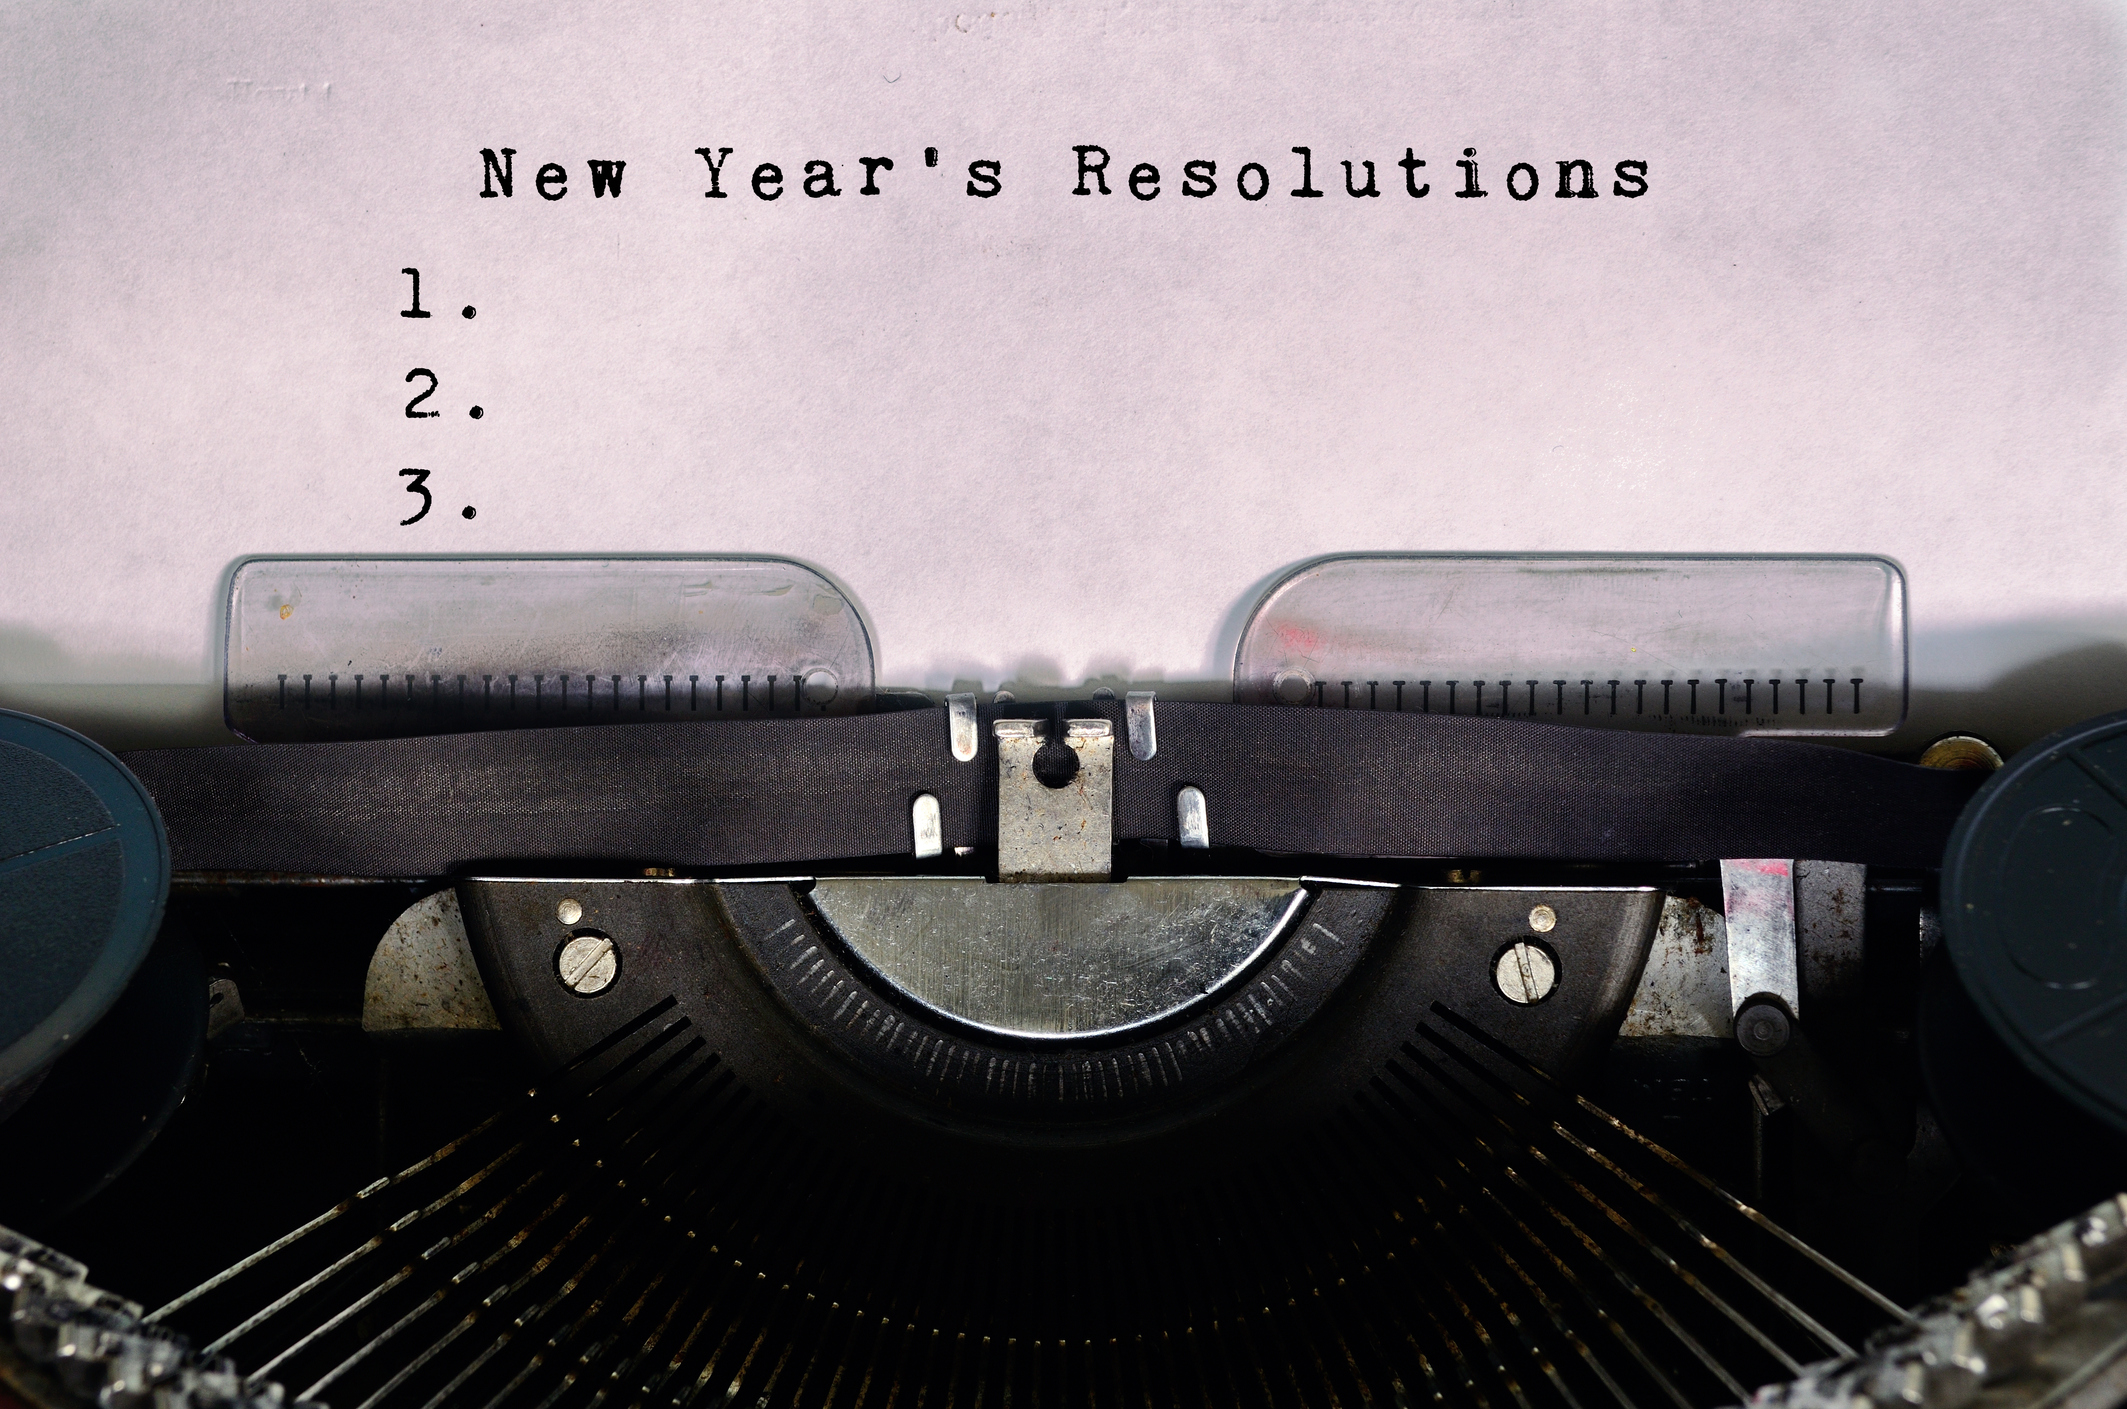 Rethinking New Year's Resolutions